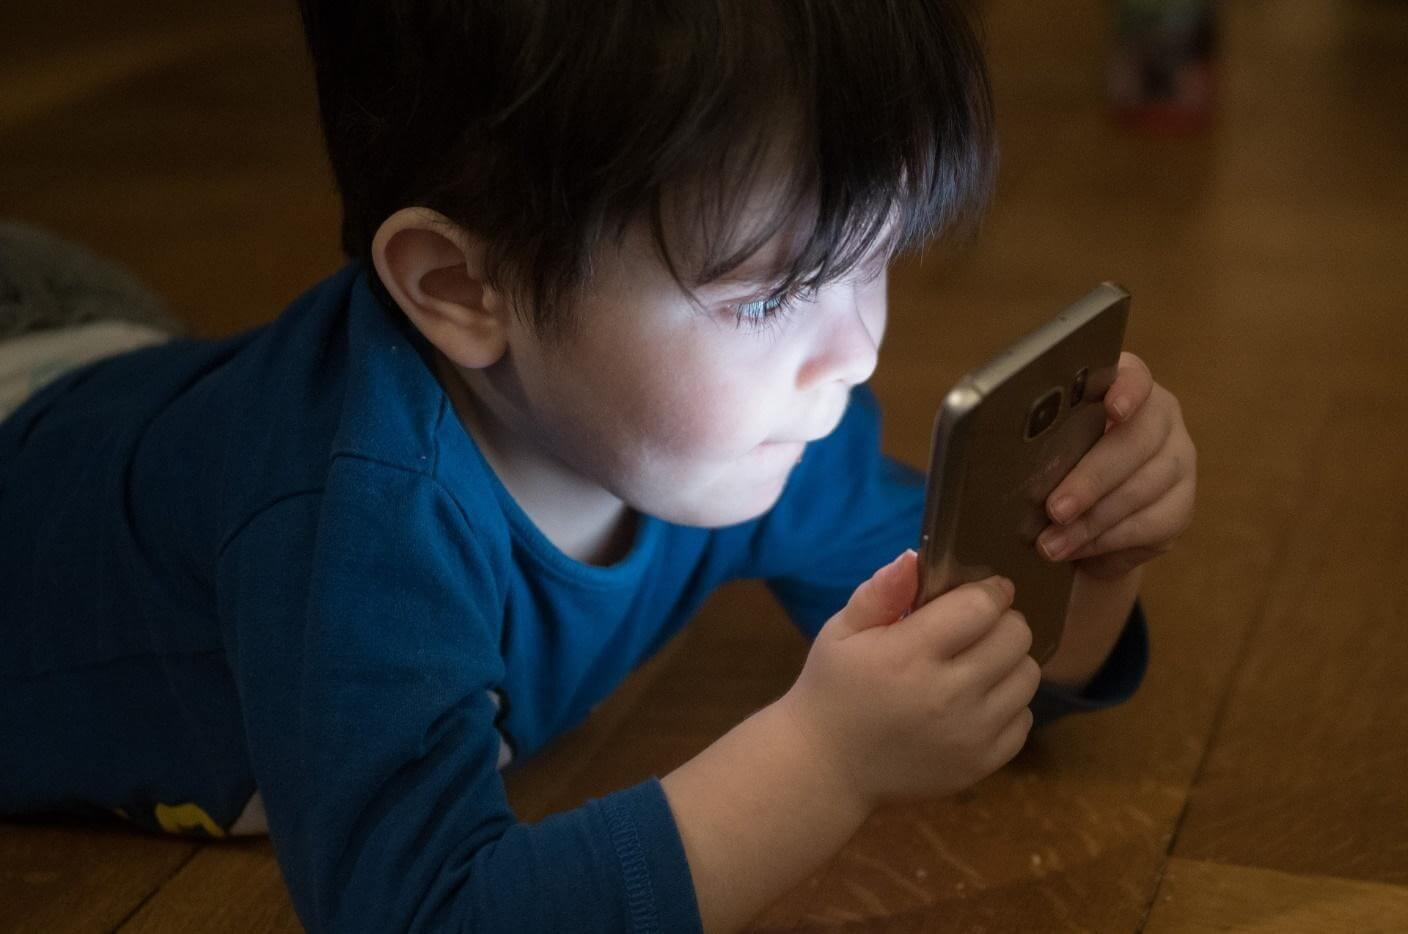 Block Porn Sites on Kid's Computer and Mobiles